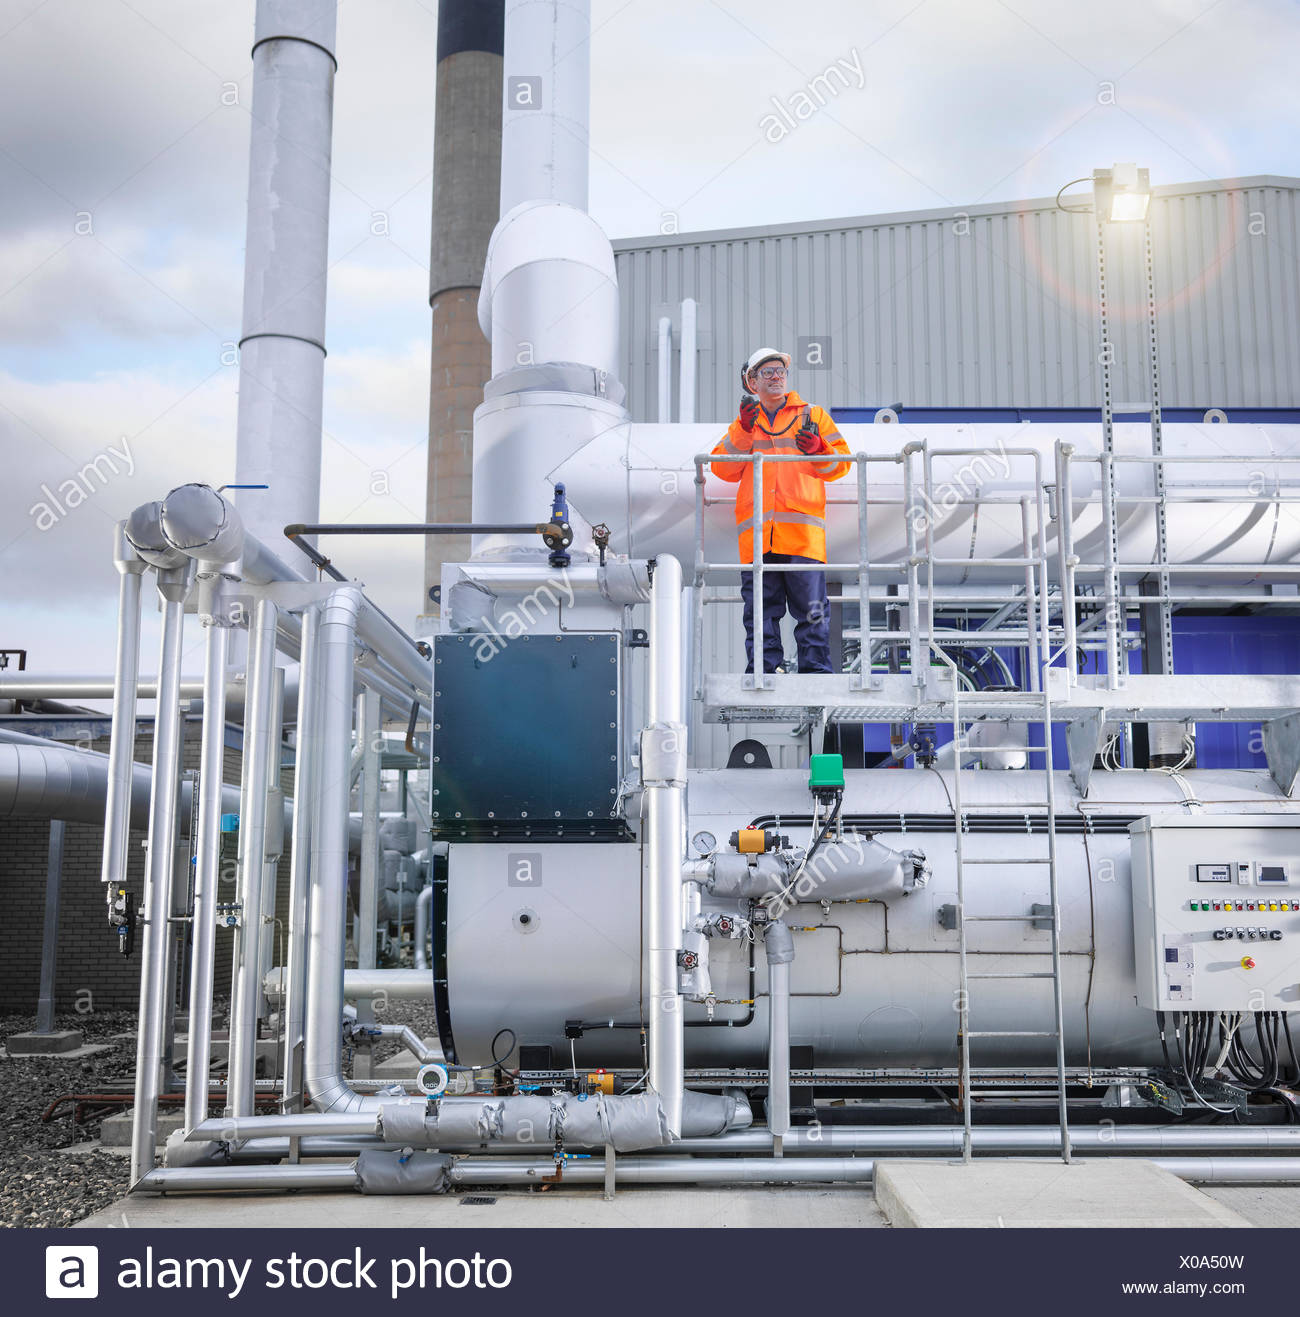 Worker standing amongst pipework of gas fired power station - Stock Image